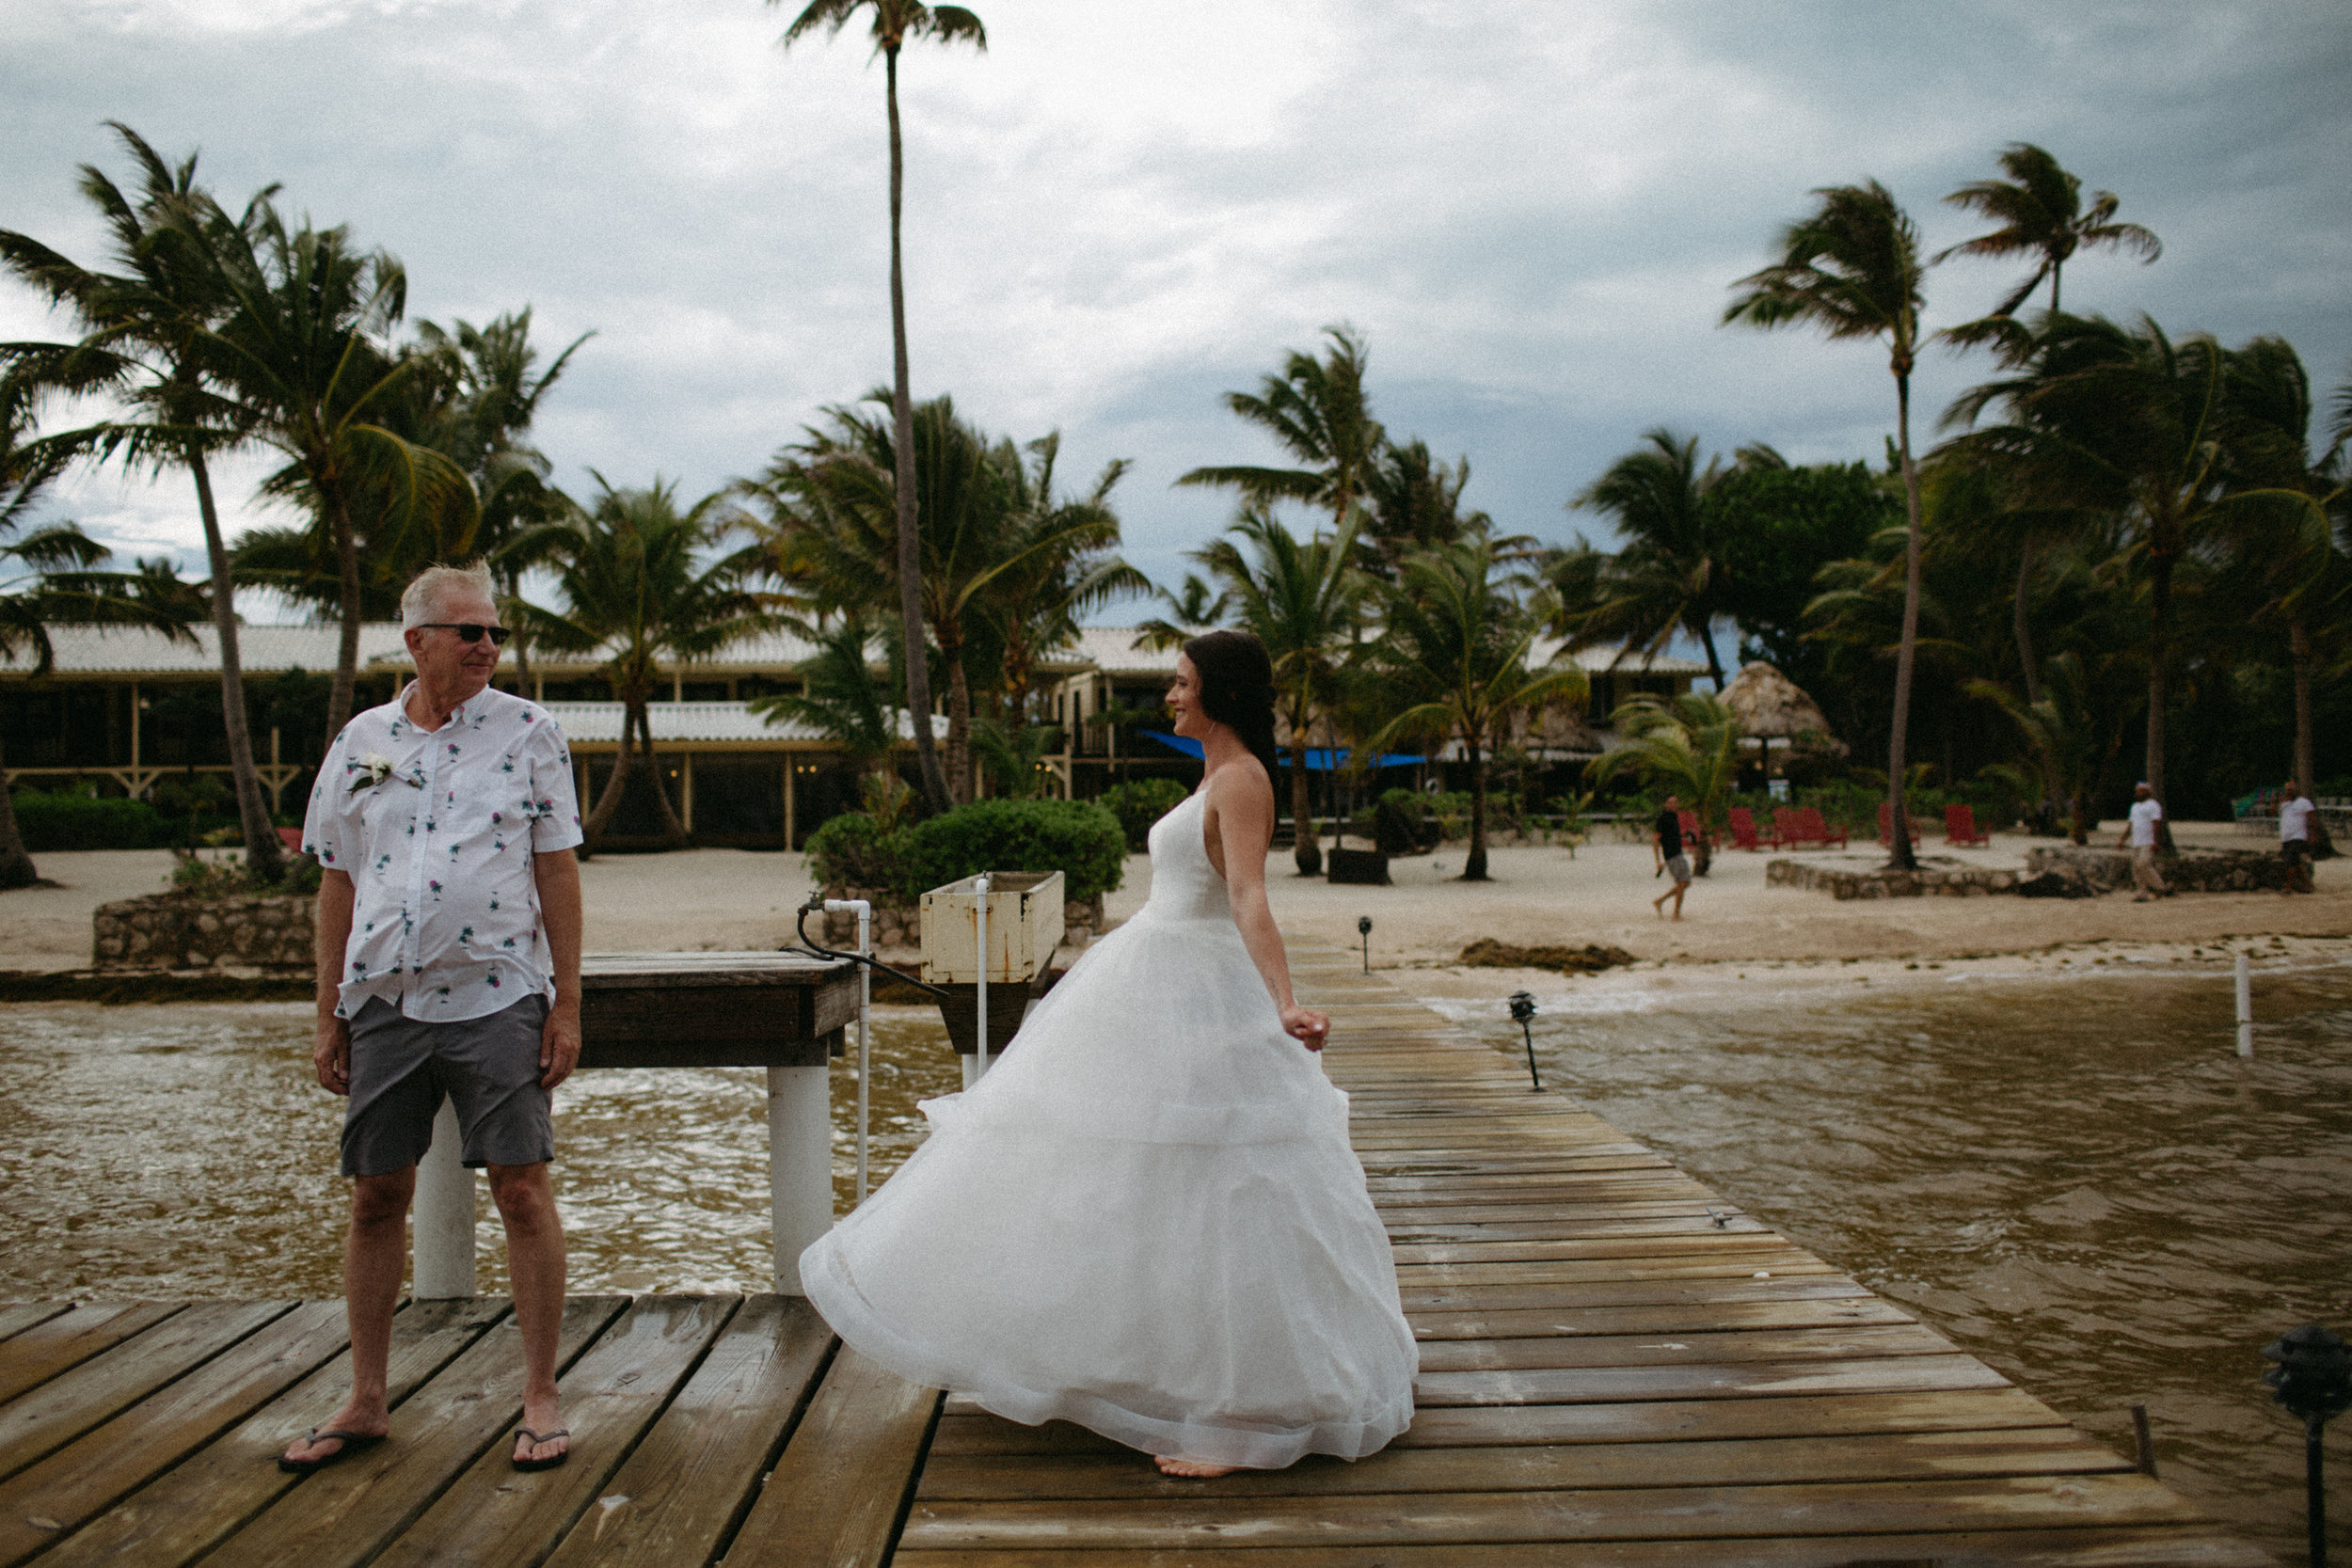 san-pescador-belize-wedding-christinemariephoto-j-k-26.jpg